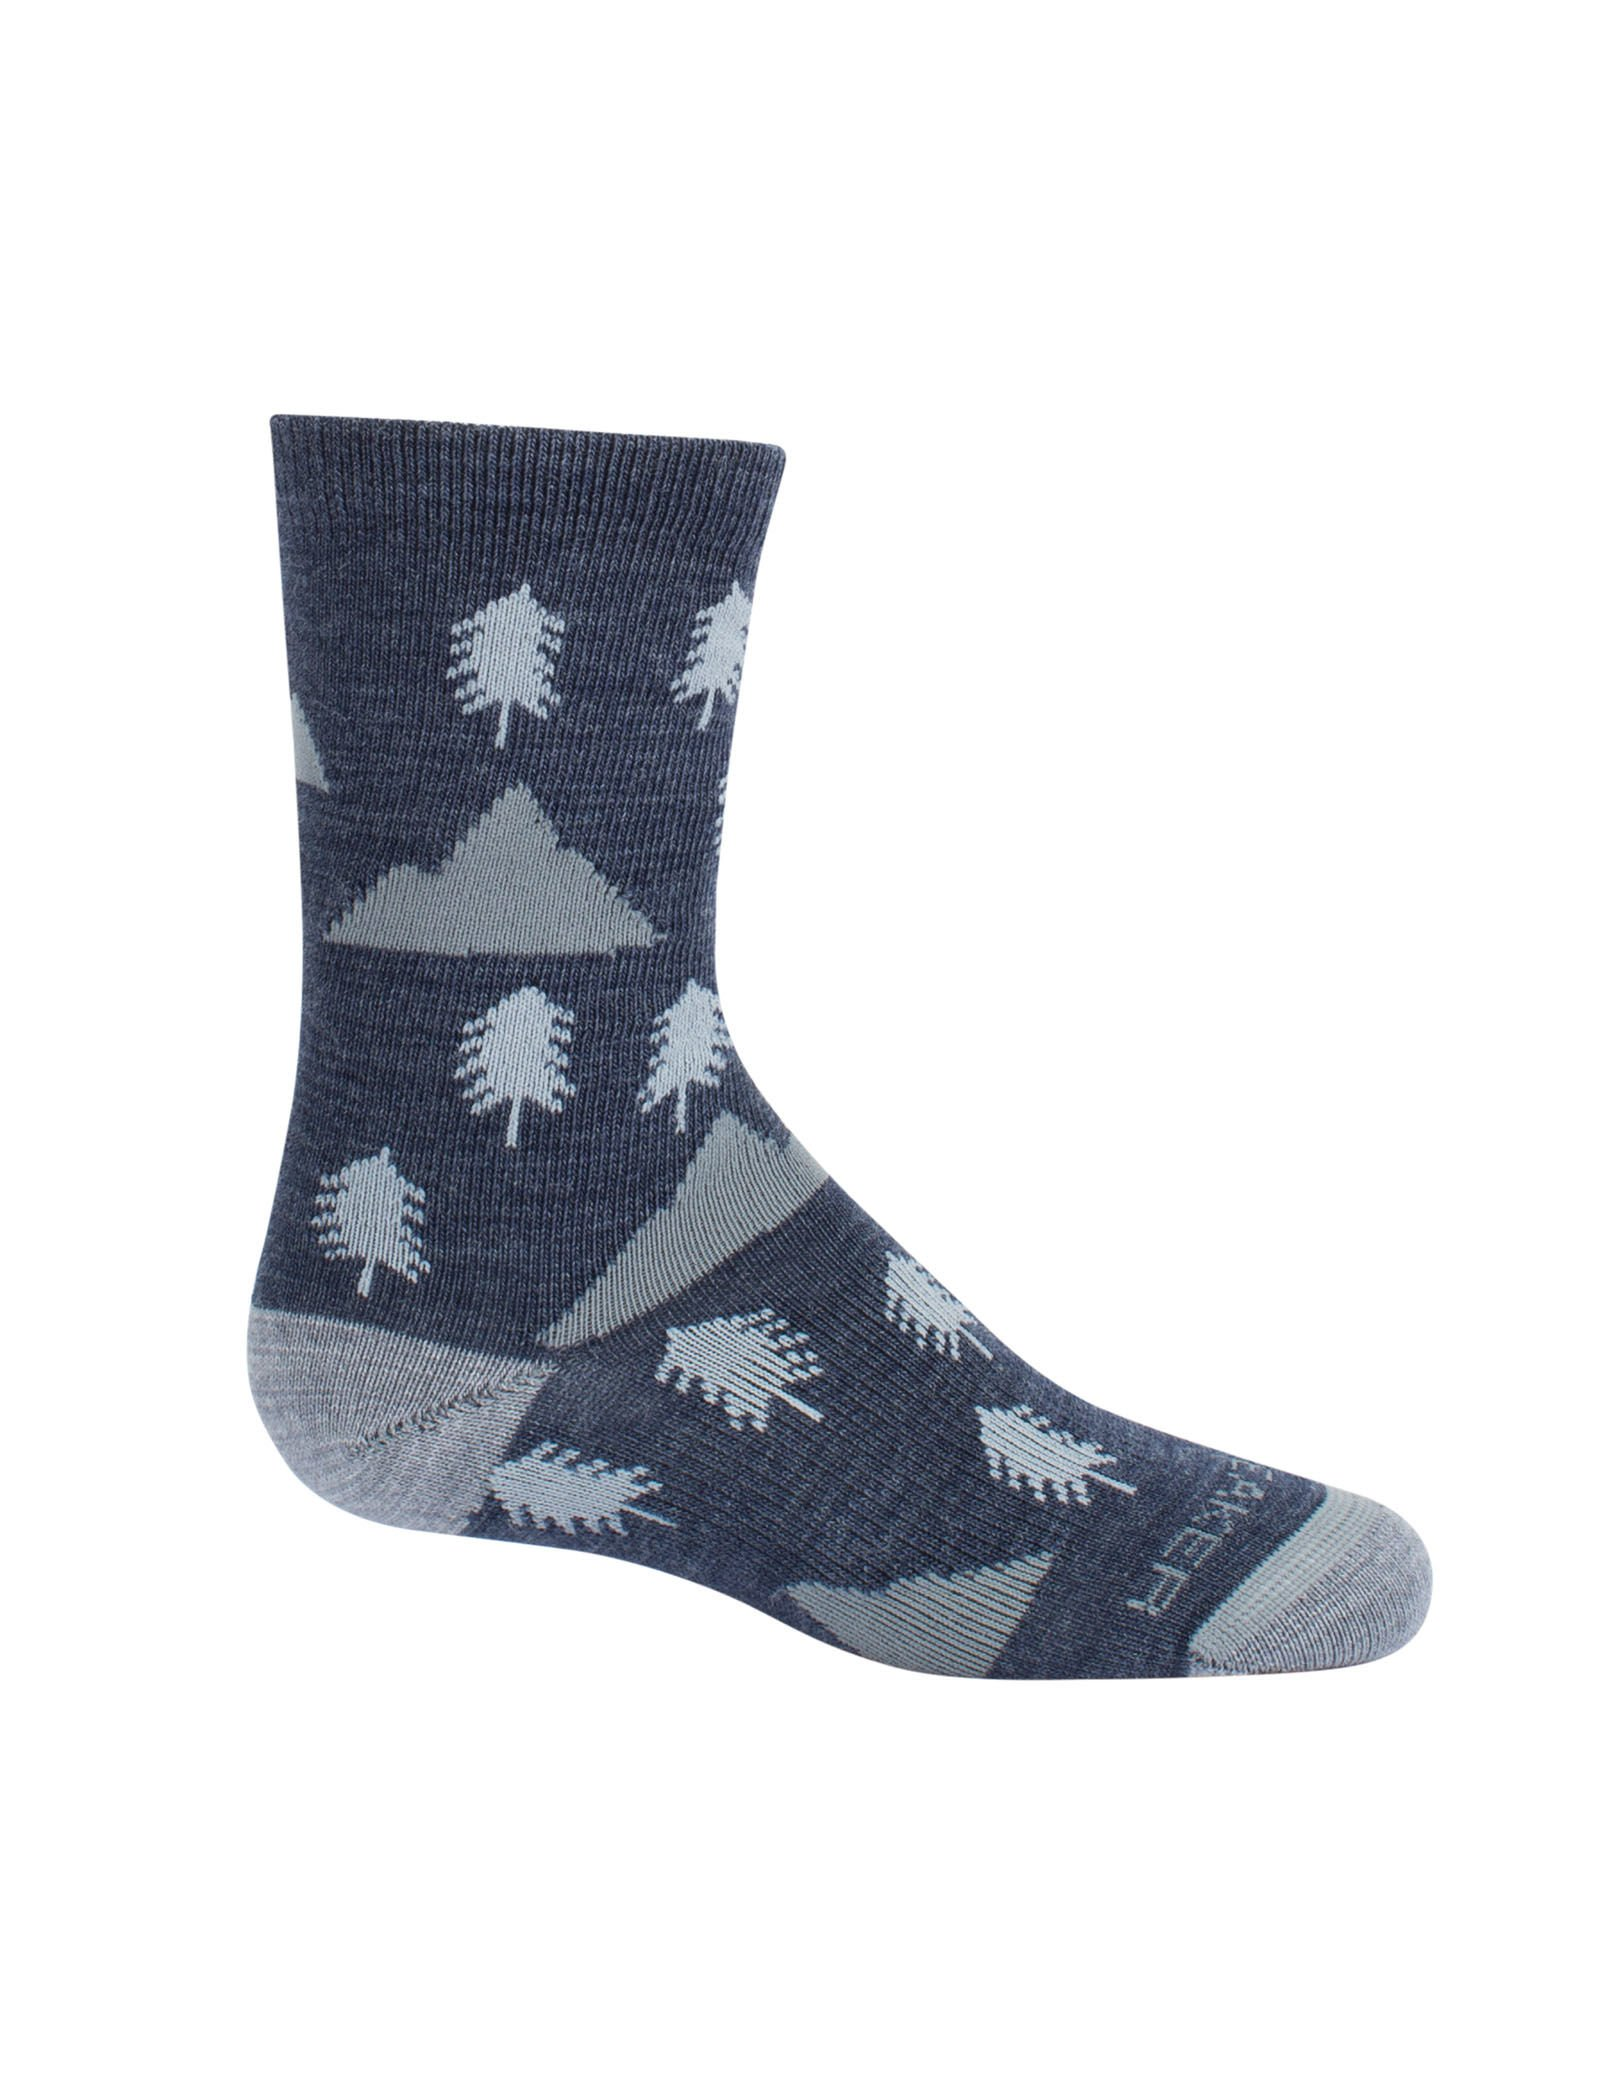 Icebreaker Kids Lifestyle Ultra Light Crew Woodsy Walk with a Helicase Sock Ring; Size: Large - Fathom HTHR